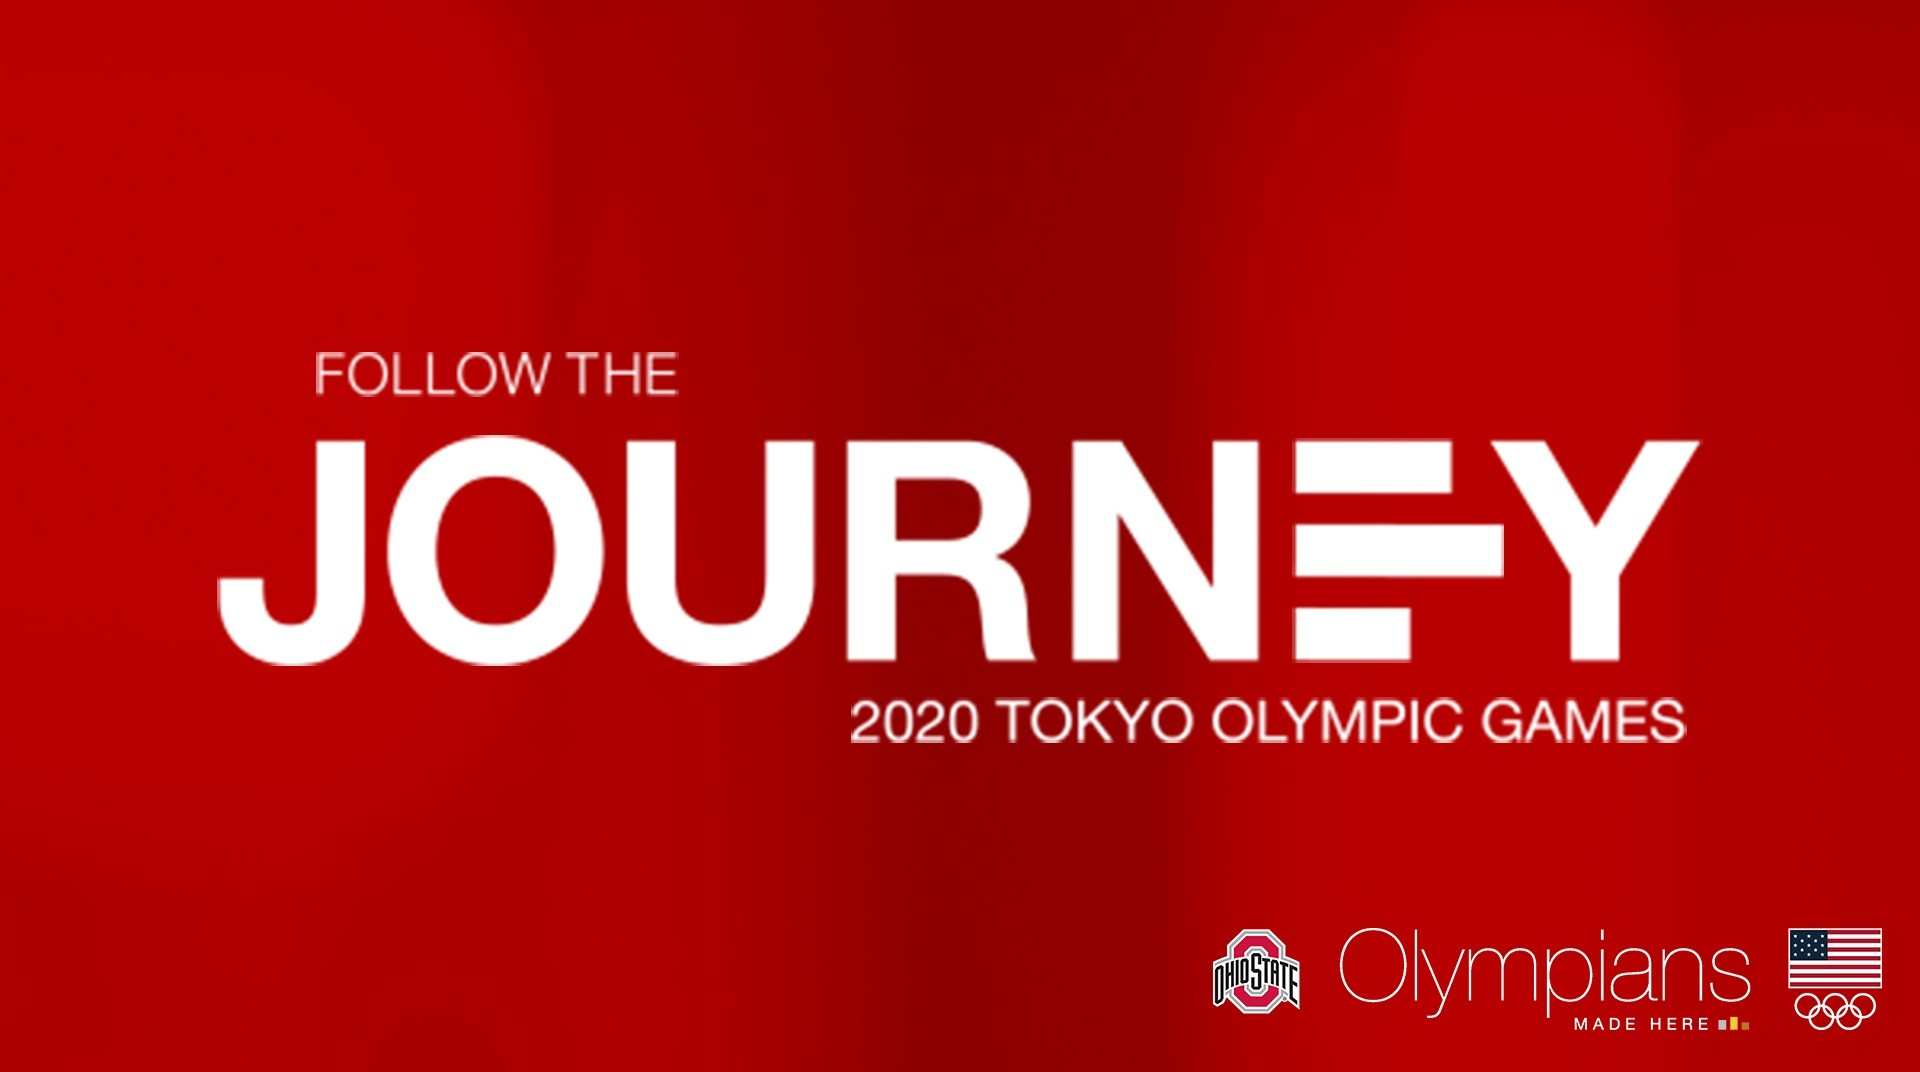 Ohio State's Tokyo 2020 Summer Olympics Watch